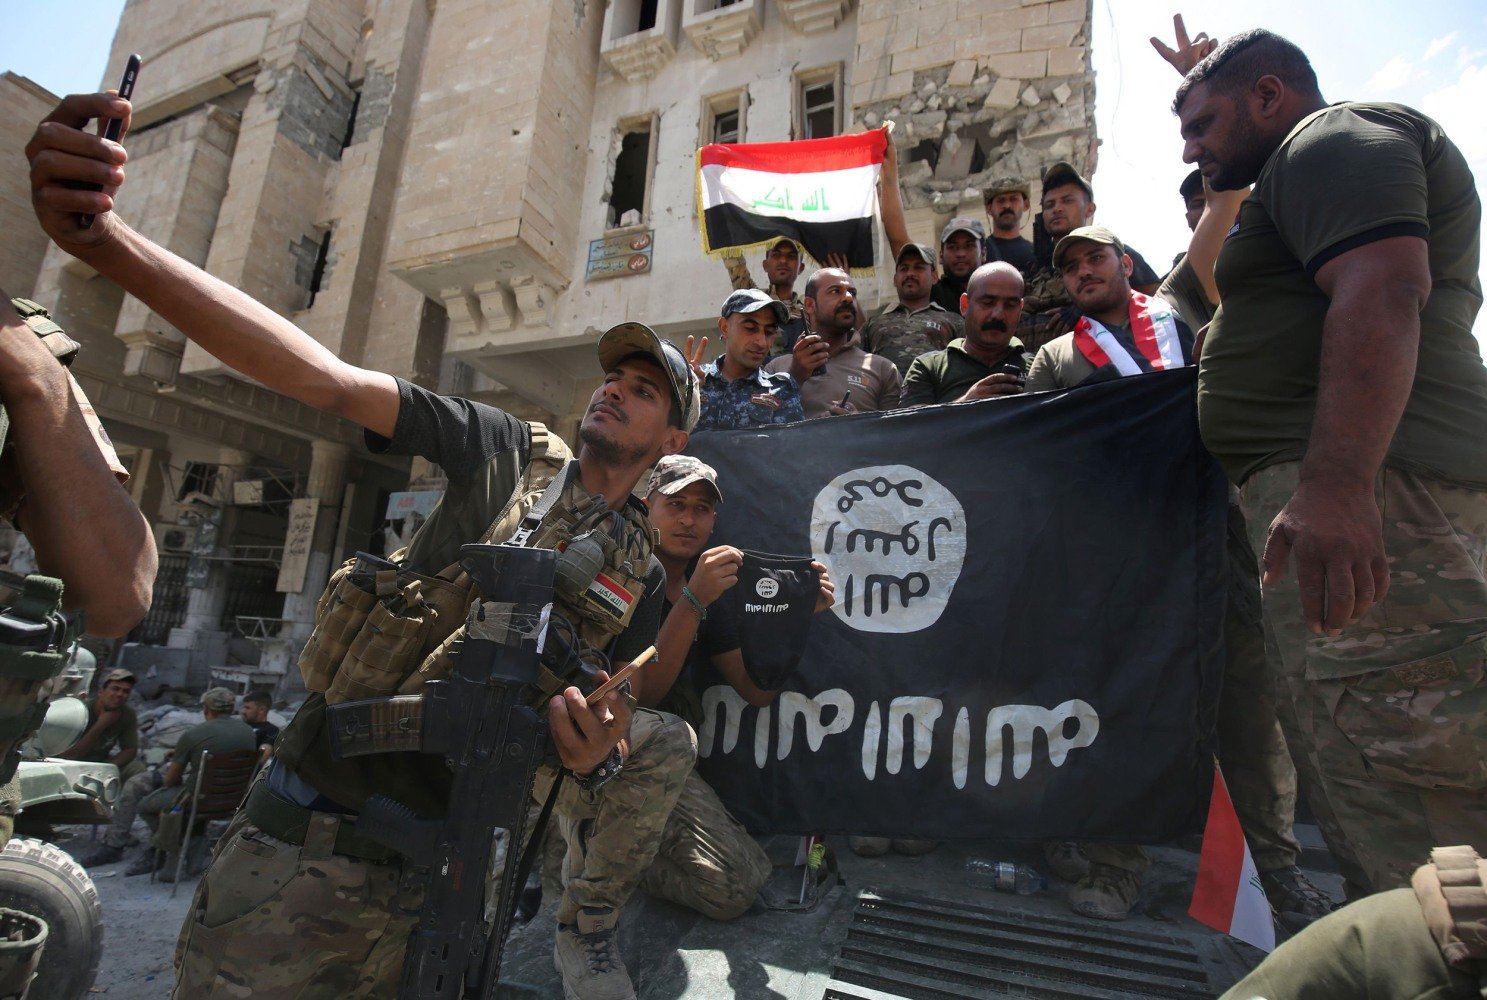 Iraq says war against ISIS is over: 'Your land' is liberated - NBC News